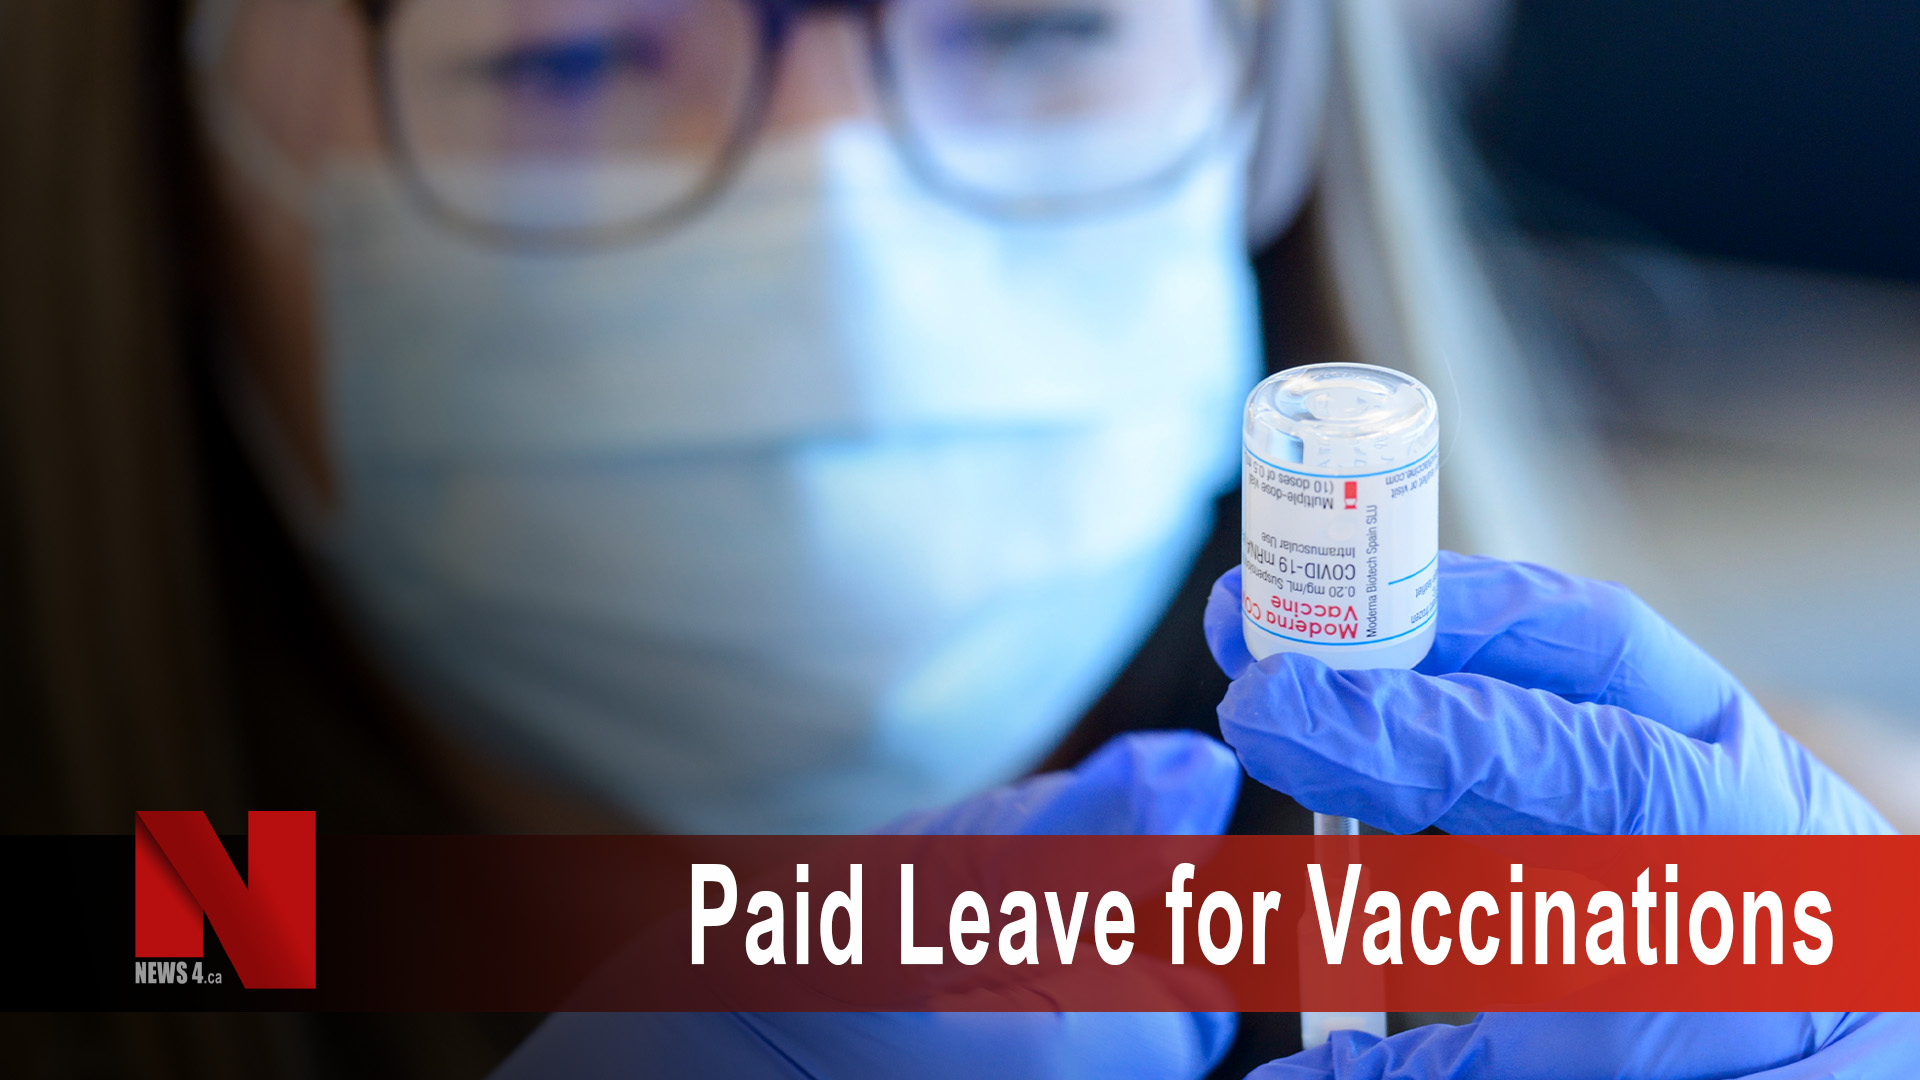 paid Leave for Vaccinations